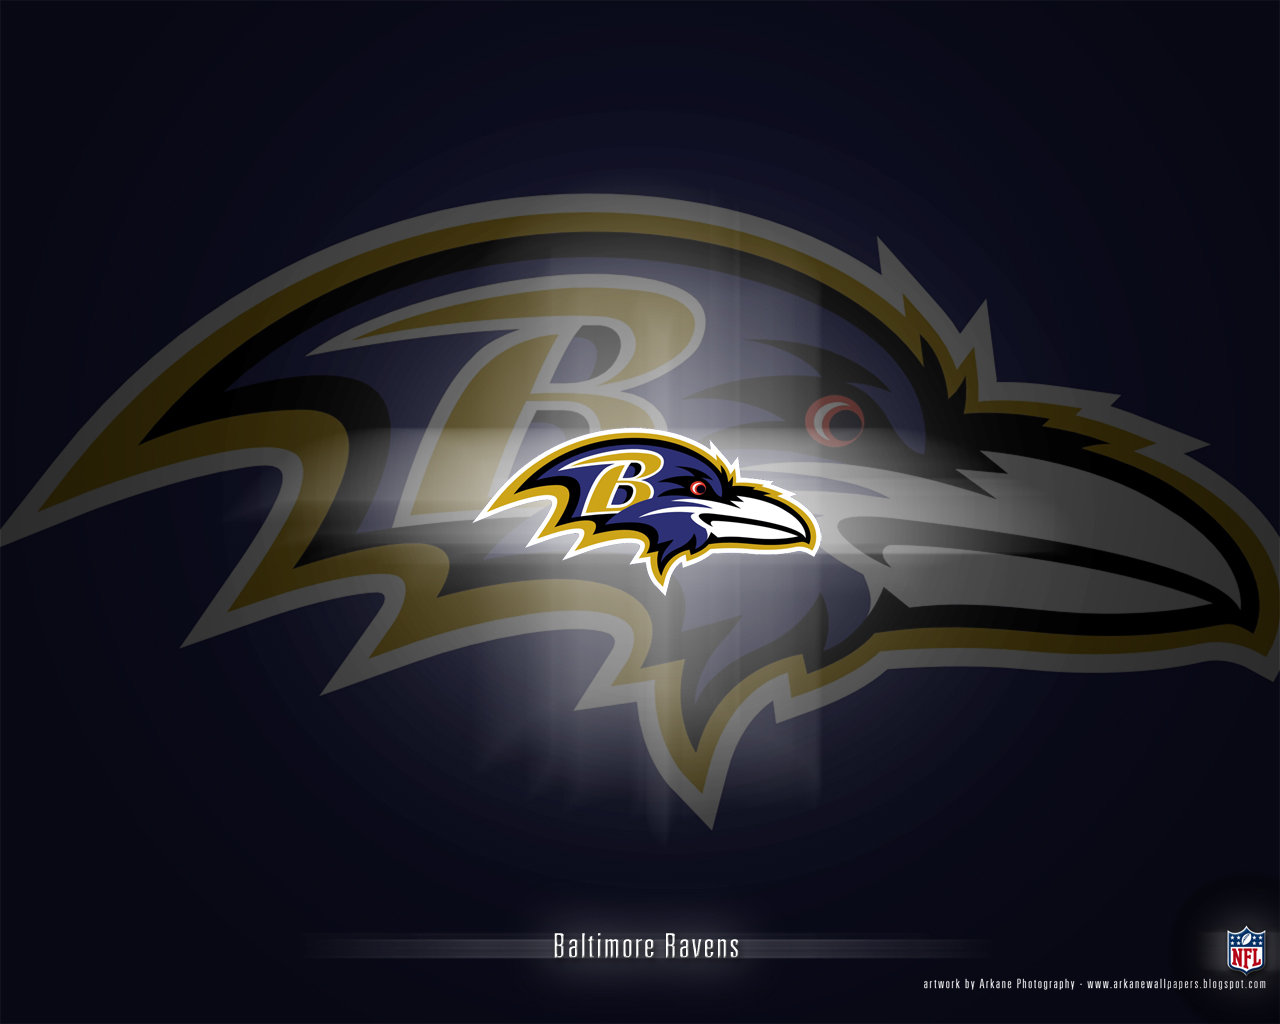 download Baltimore Ravens wallpaper HD images Baltimore 1280x1024